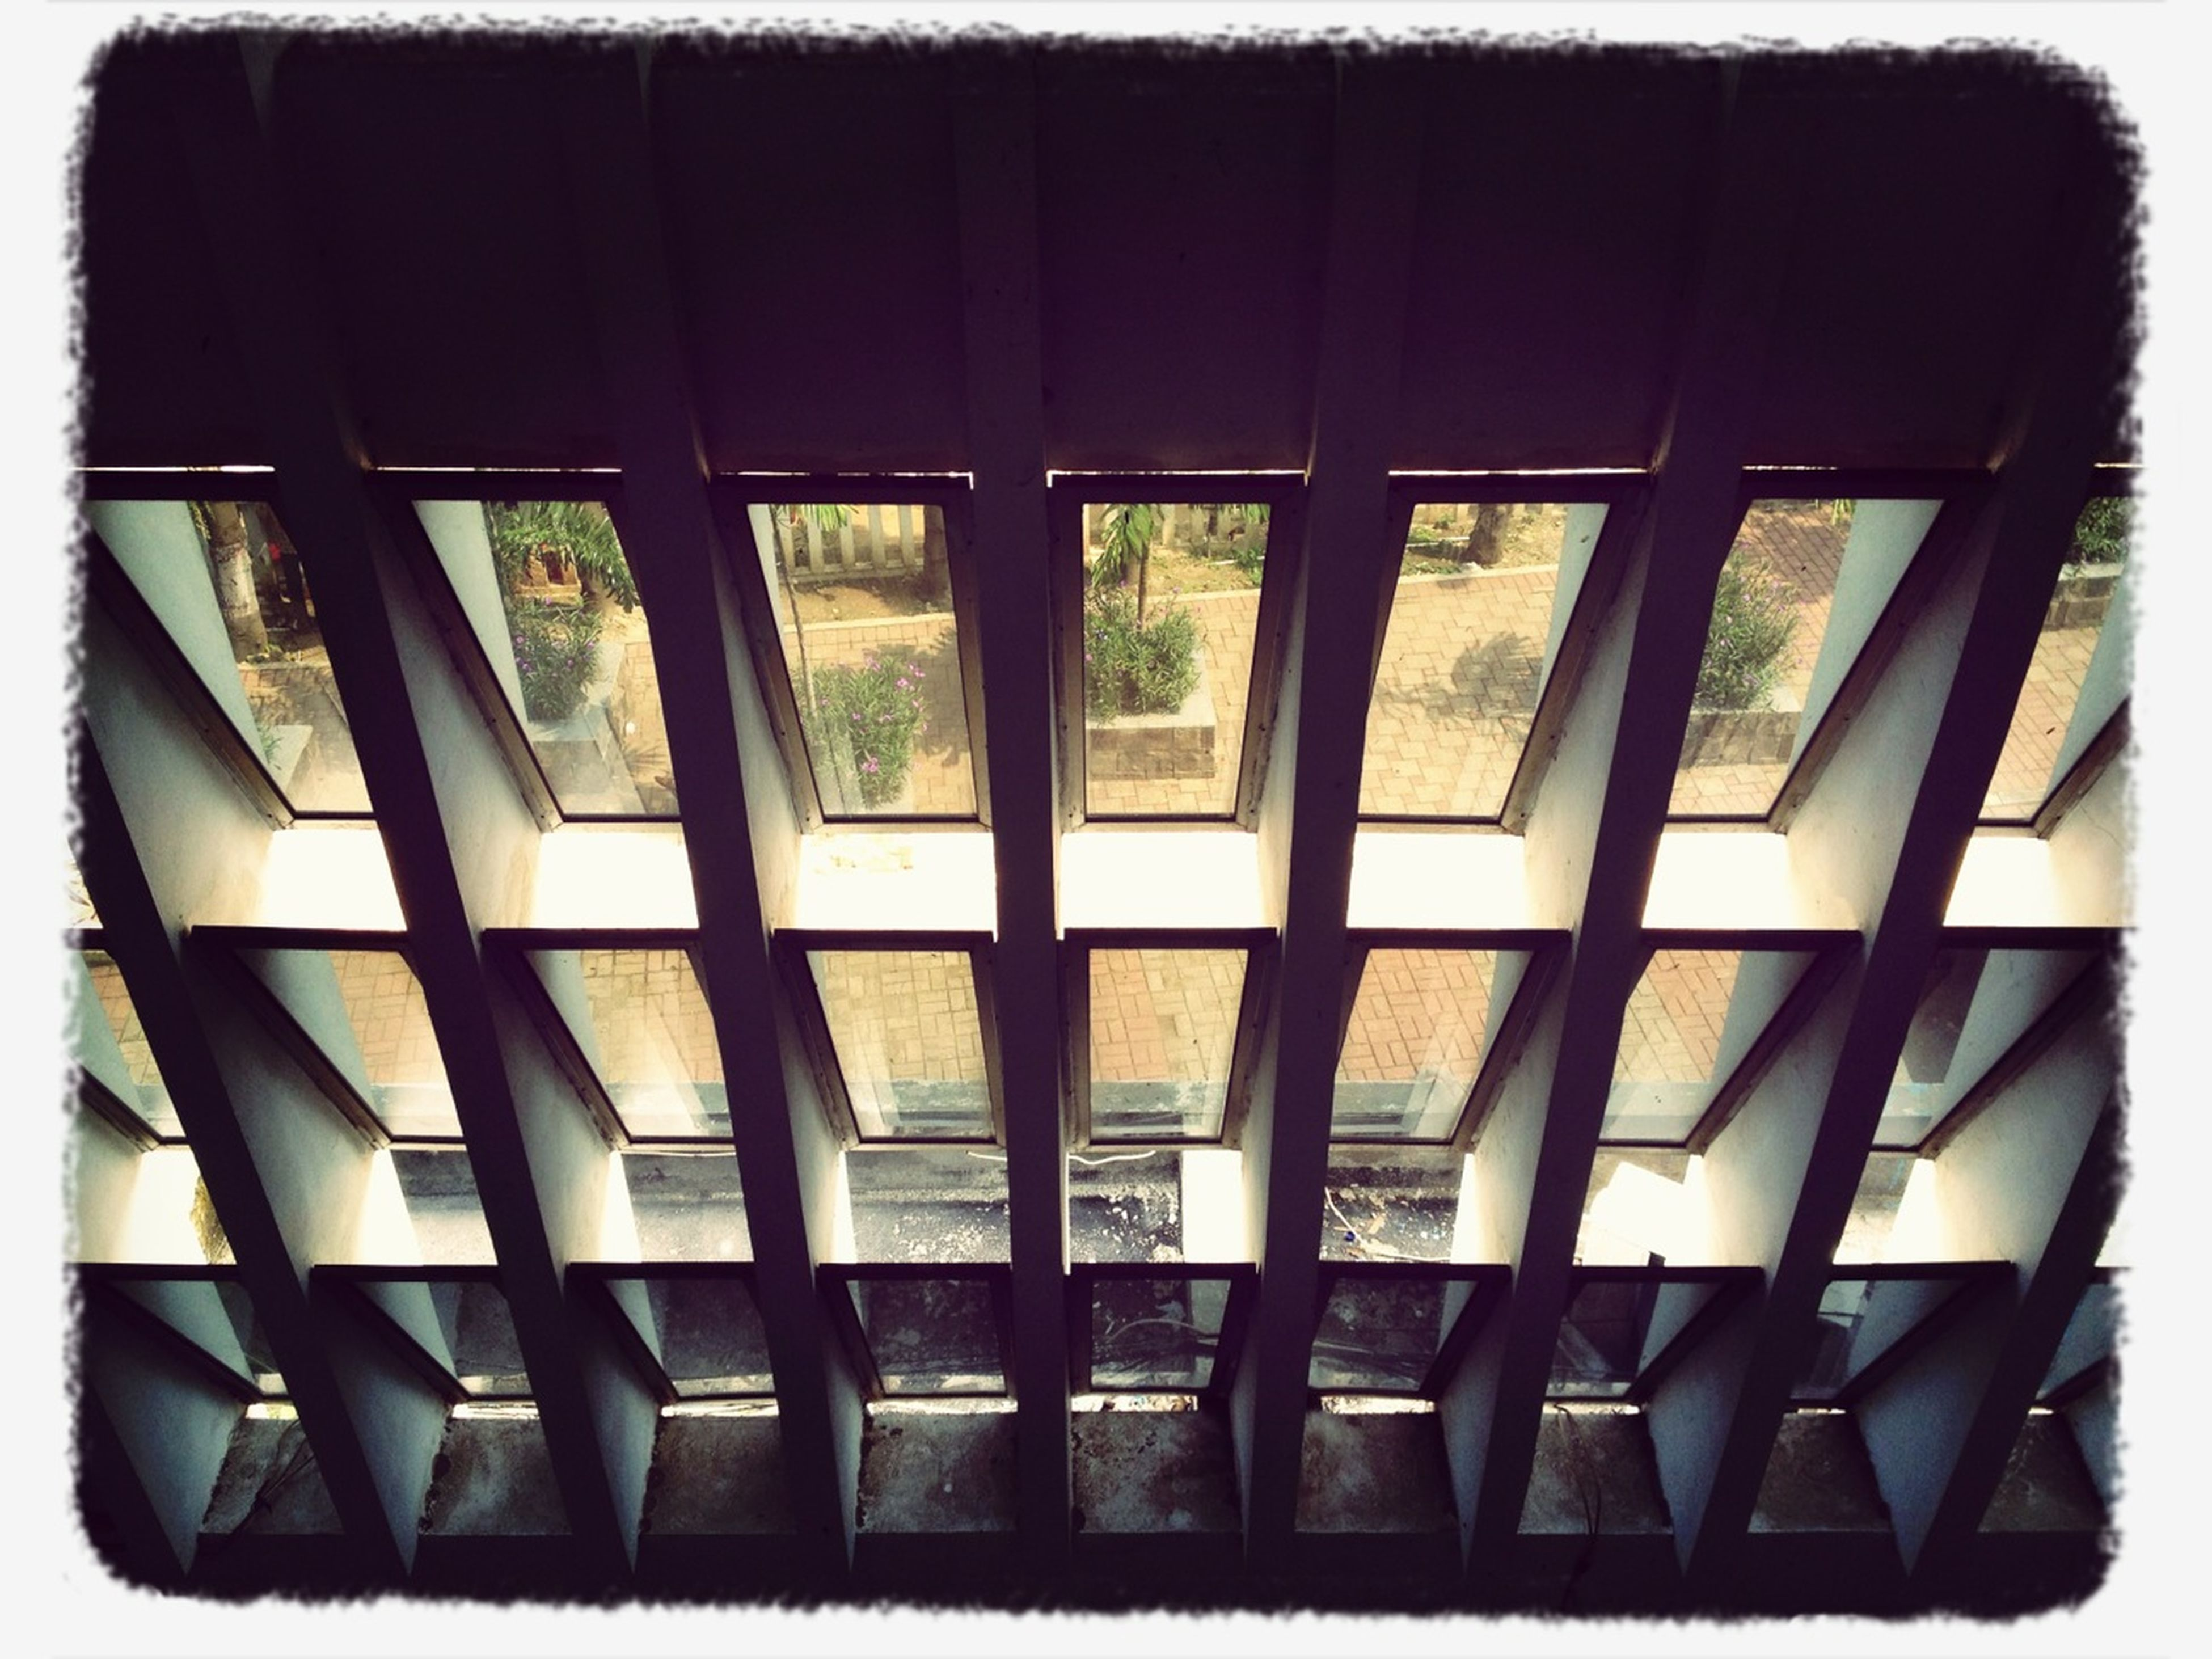 architecture, window, built structure, building exterior, transfer print, glass - material, low angle view, repetition, in a row, indoors, auto post production filter, modern, side by side, building, no people, day, full frame, pattern, backgrounds, geometric shape